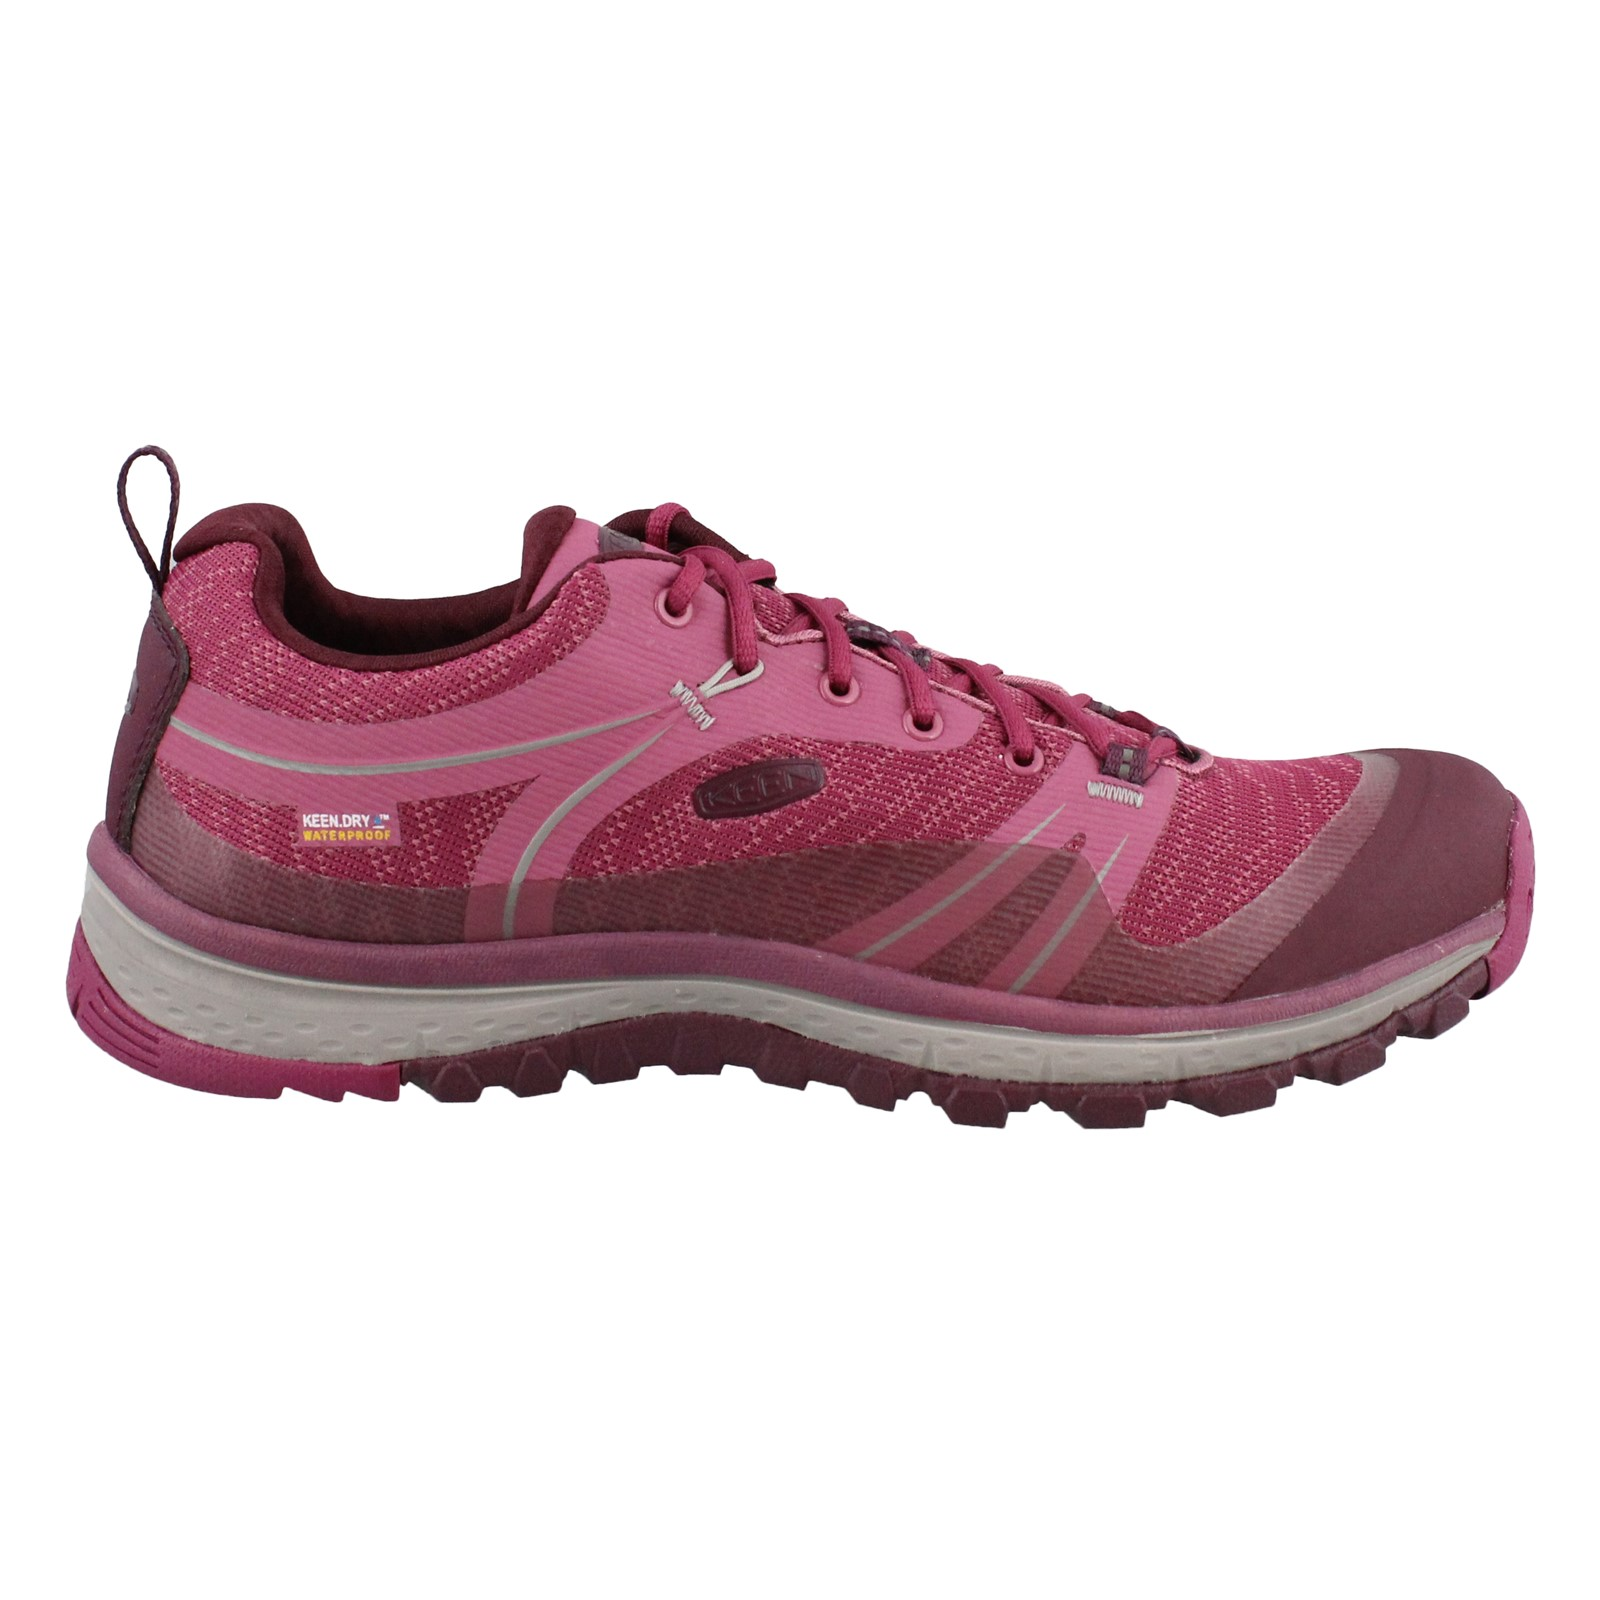 Women's Keen, Terradora Waterproof Shoes